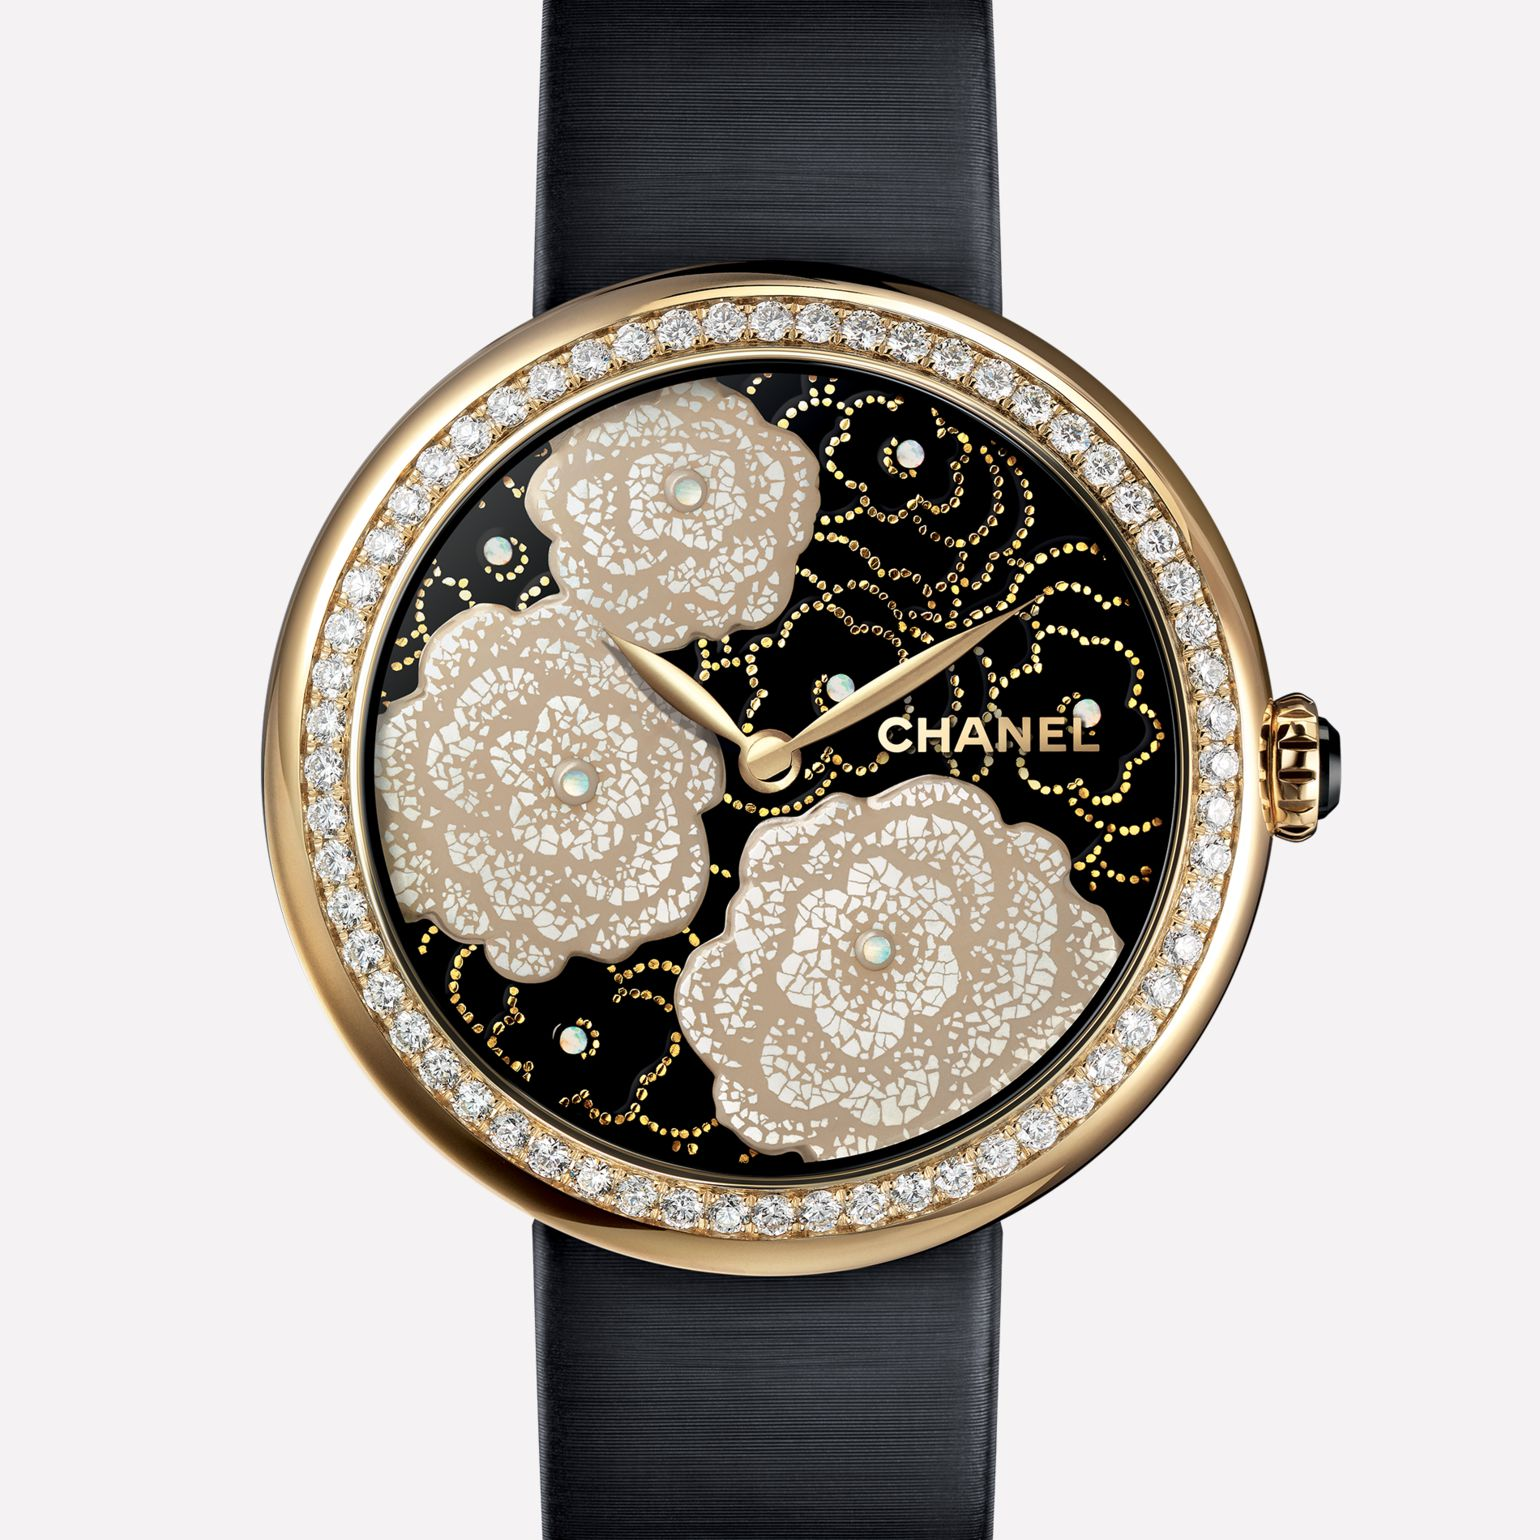 Mademoiselle Privé Yellow gold camellias and quail eggshell, black lacquer dial - Maki-e technique